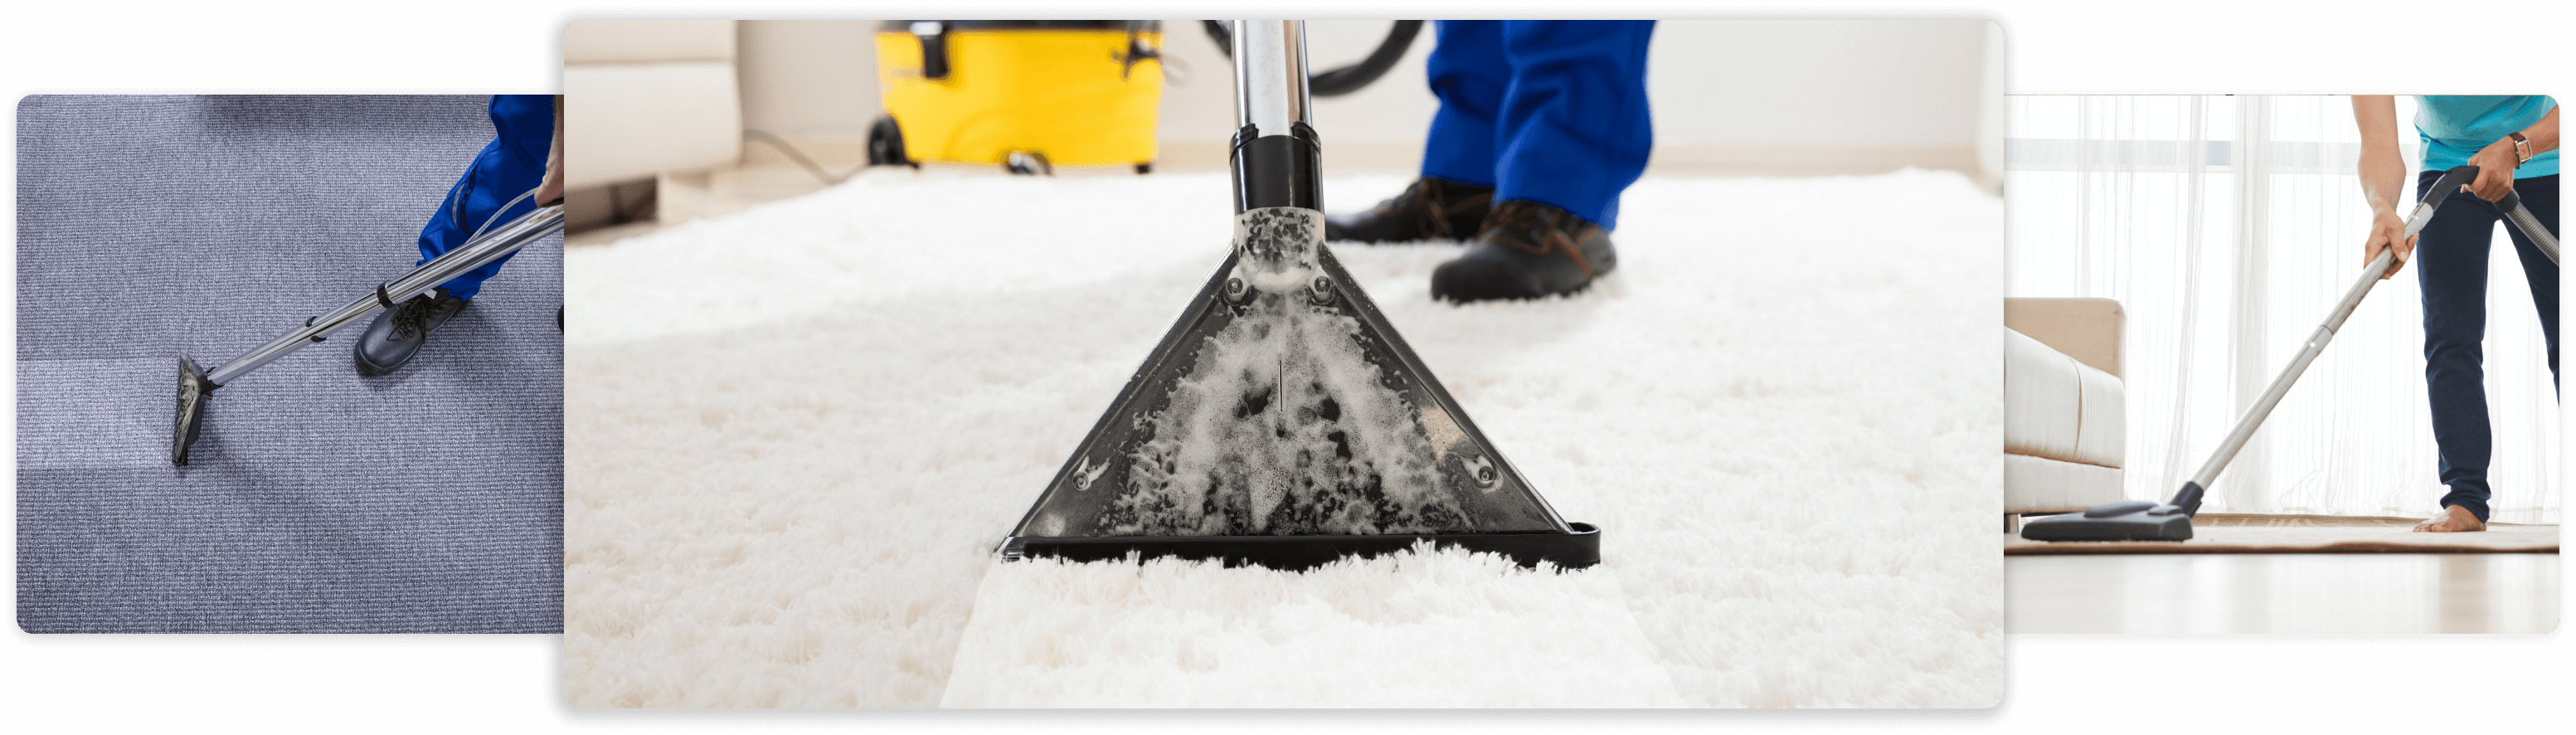 Business Software for Carpet Cleaning